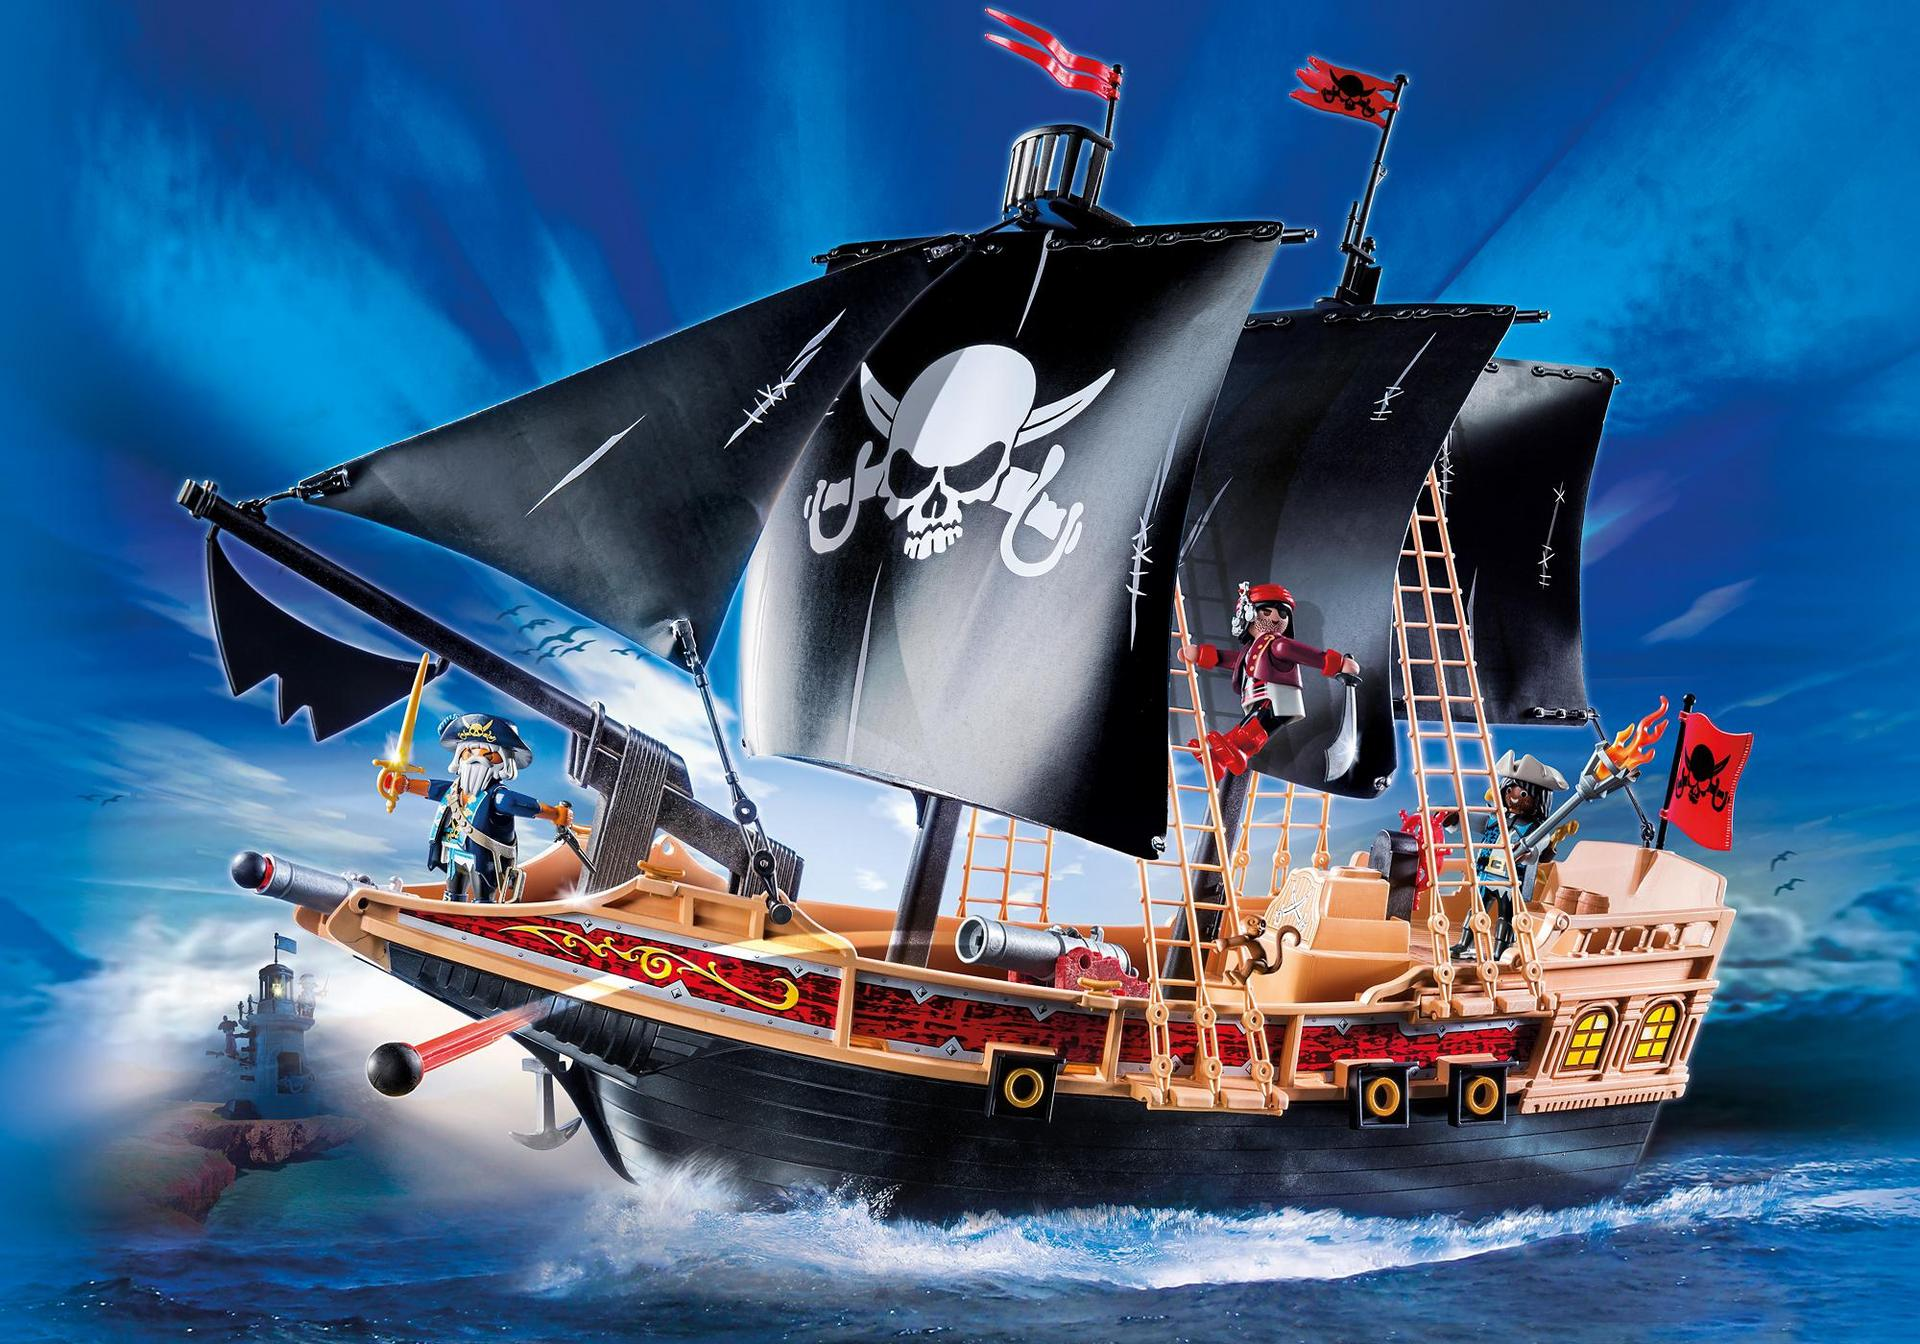 6678 playmobil - Bateau pirate peter pan ...